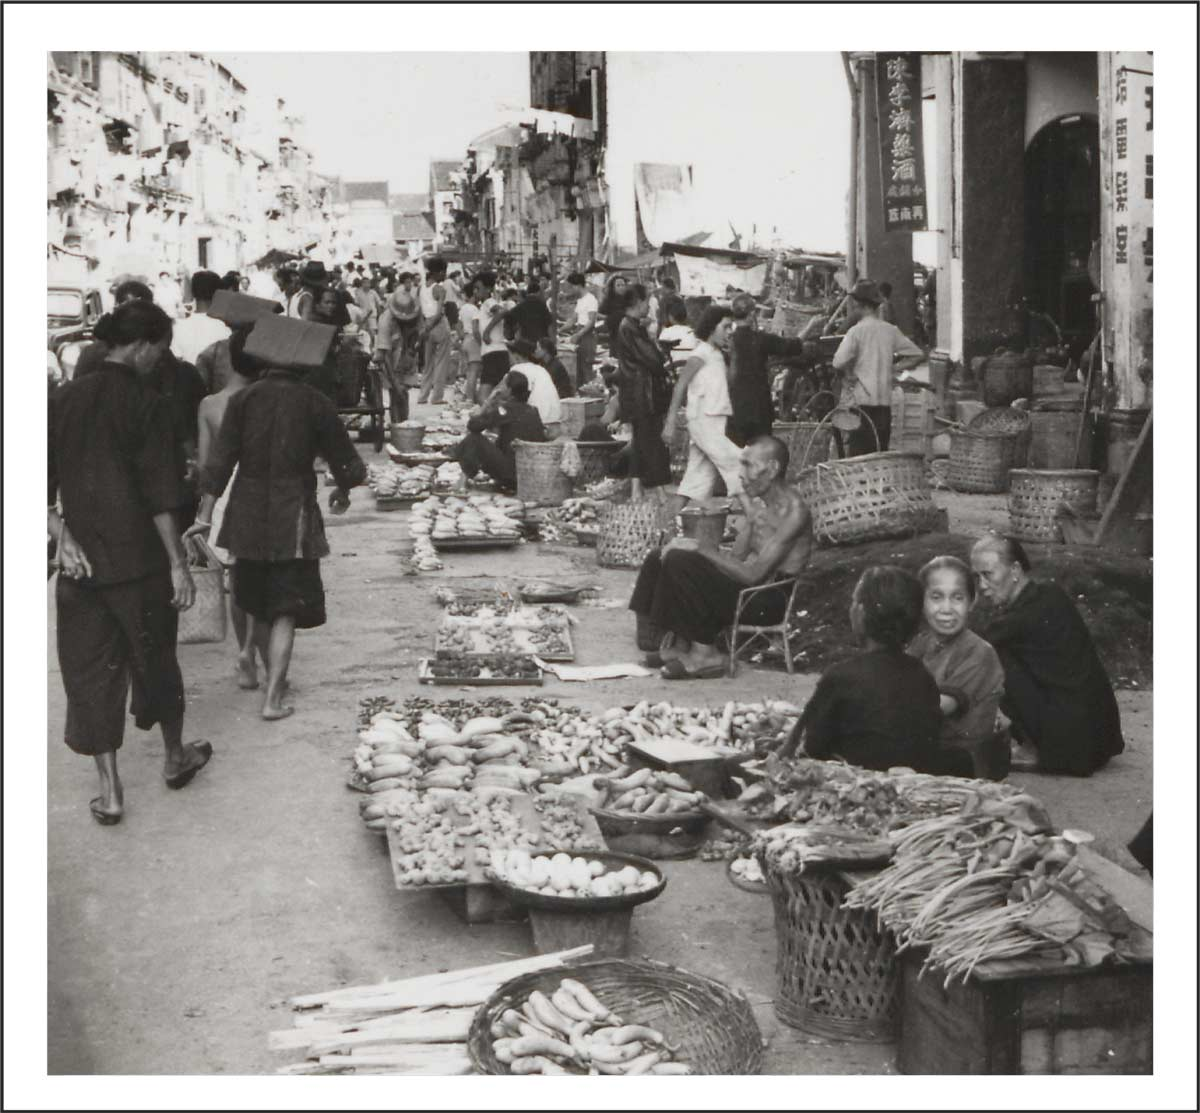 Samsui women and vegetable-sellers at a street market in Chinatown, 1950s<br>Source: The Straits Times © Singapore Press Holdings Limited. Reprinted with permission.